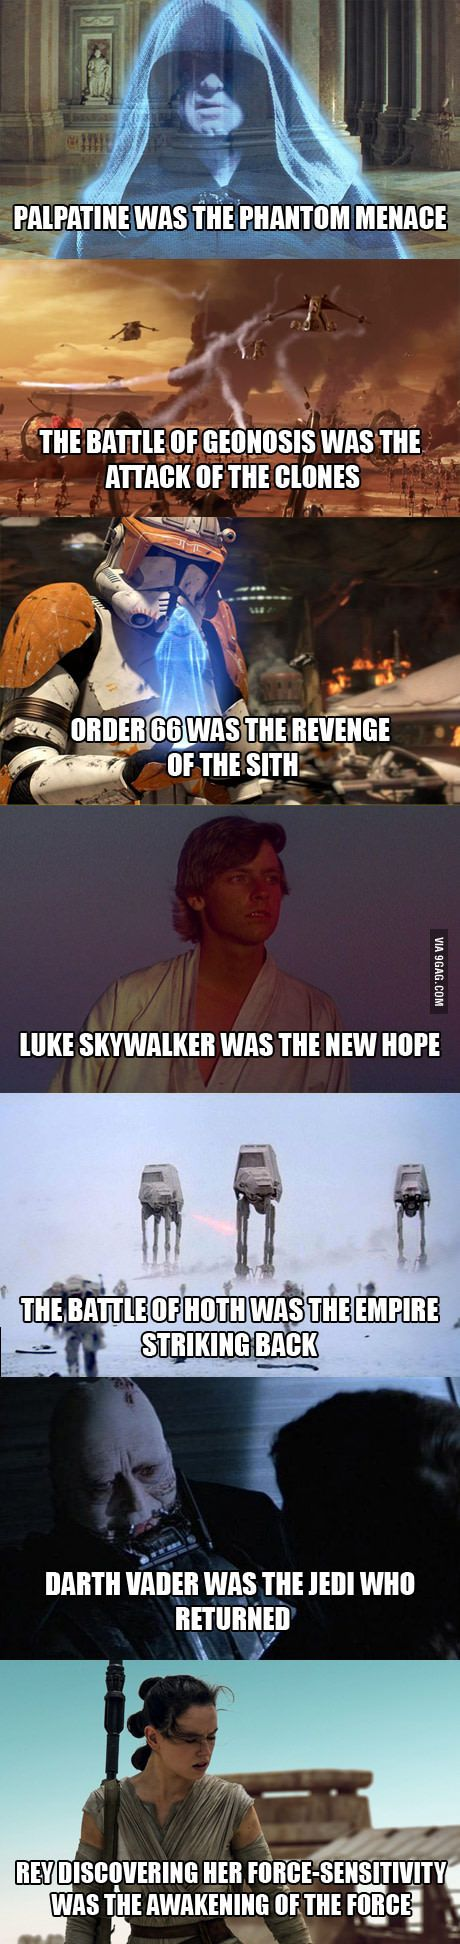 Interesting Star Wars observations... I don't agree with all of them, but they're pretty deep! ;)